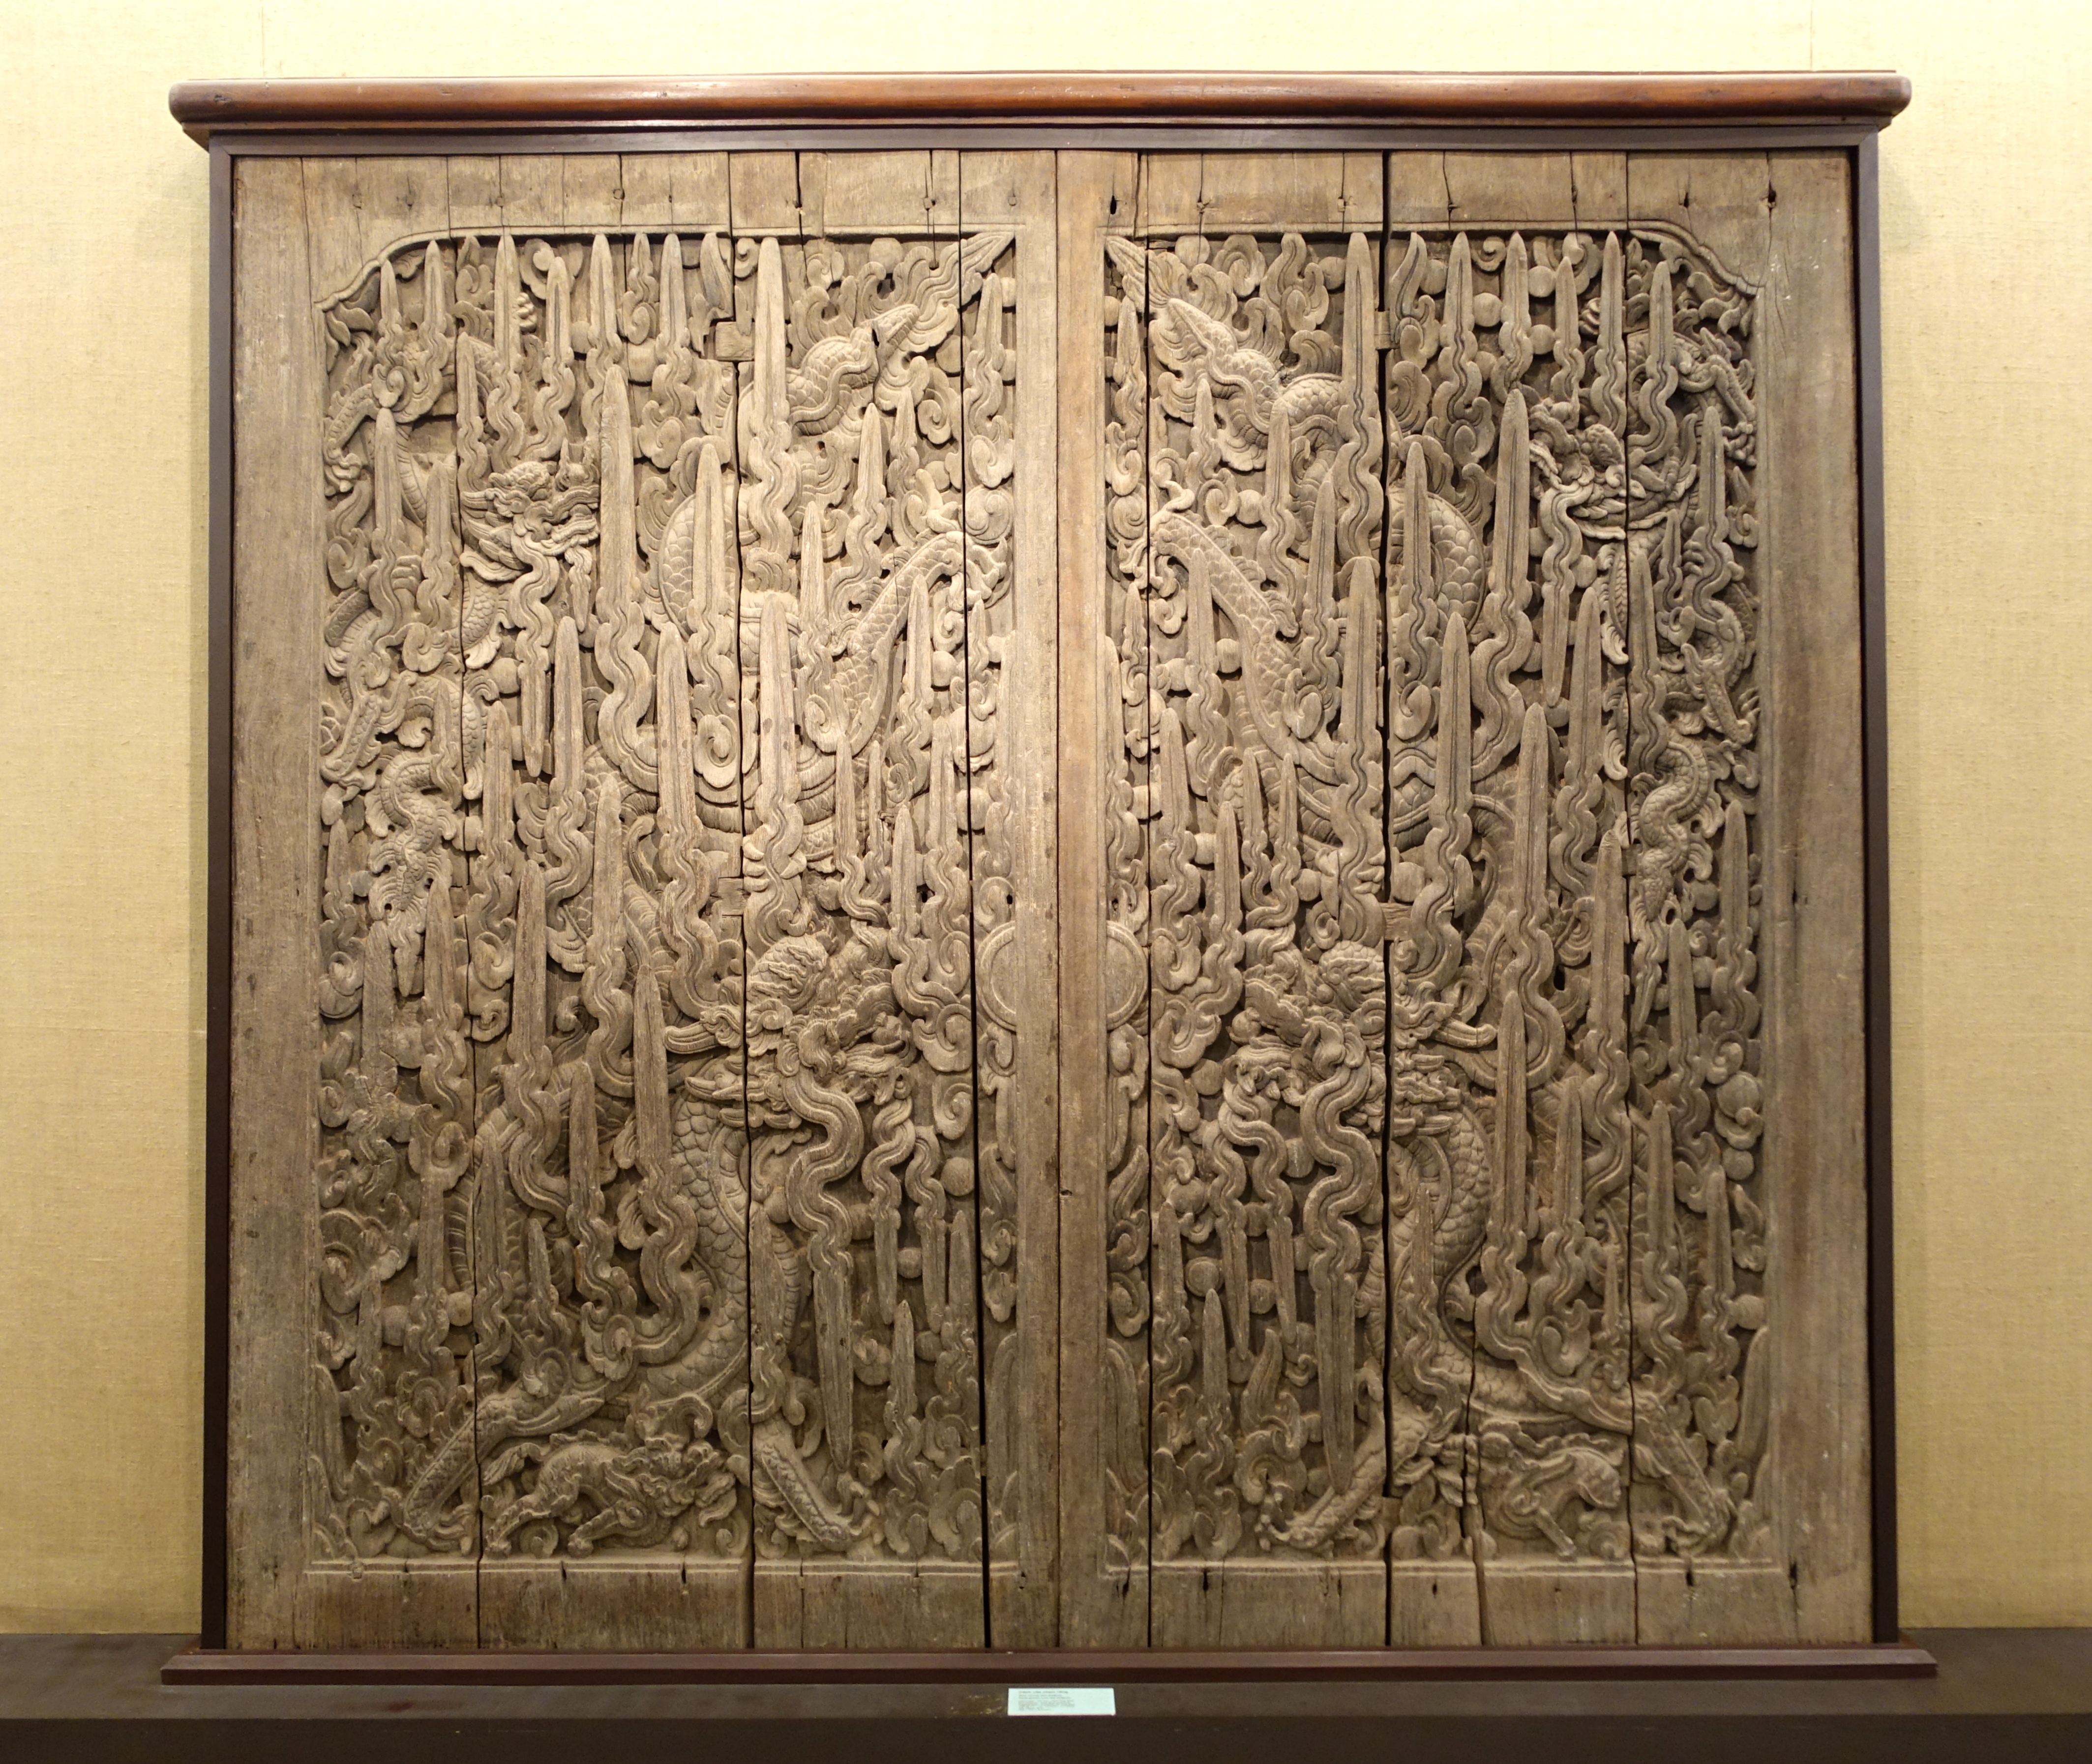 FileDoor carved with dragons Keo pagoda Thai Binh province 17th century & File:Door carved with dragons Keo pagoda Thai Binh province 17th ...